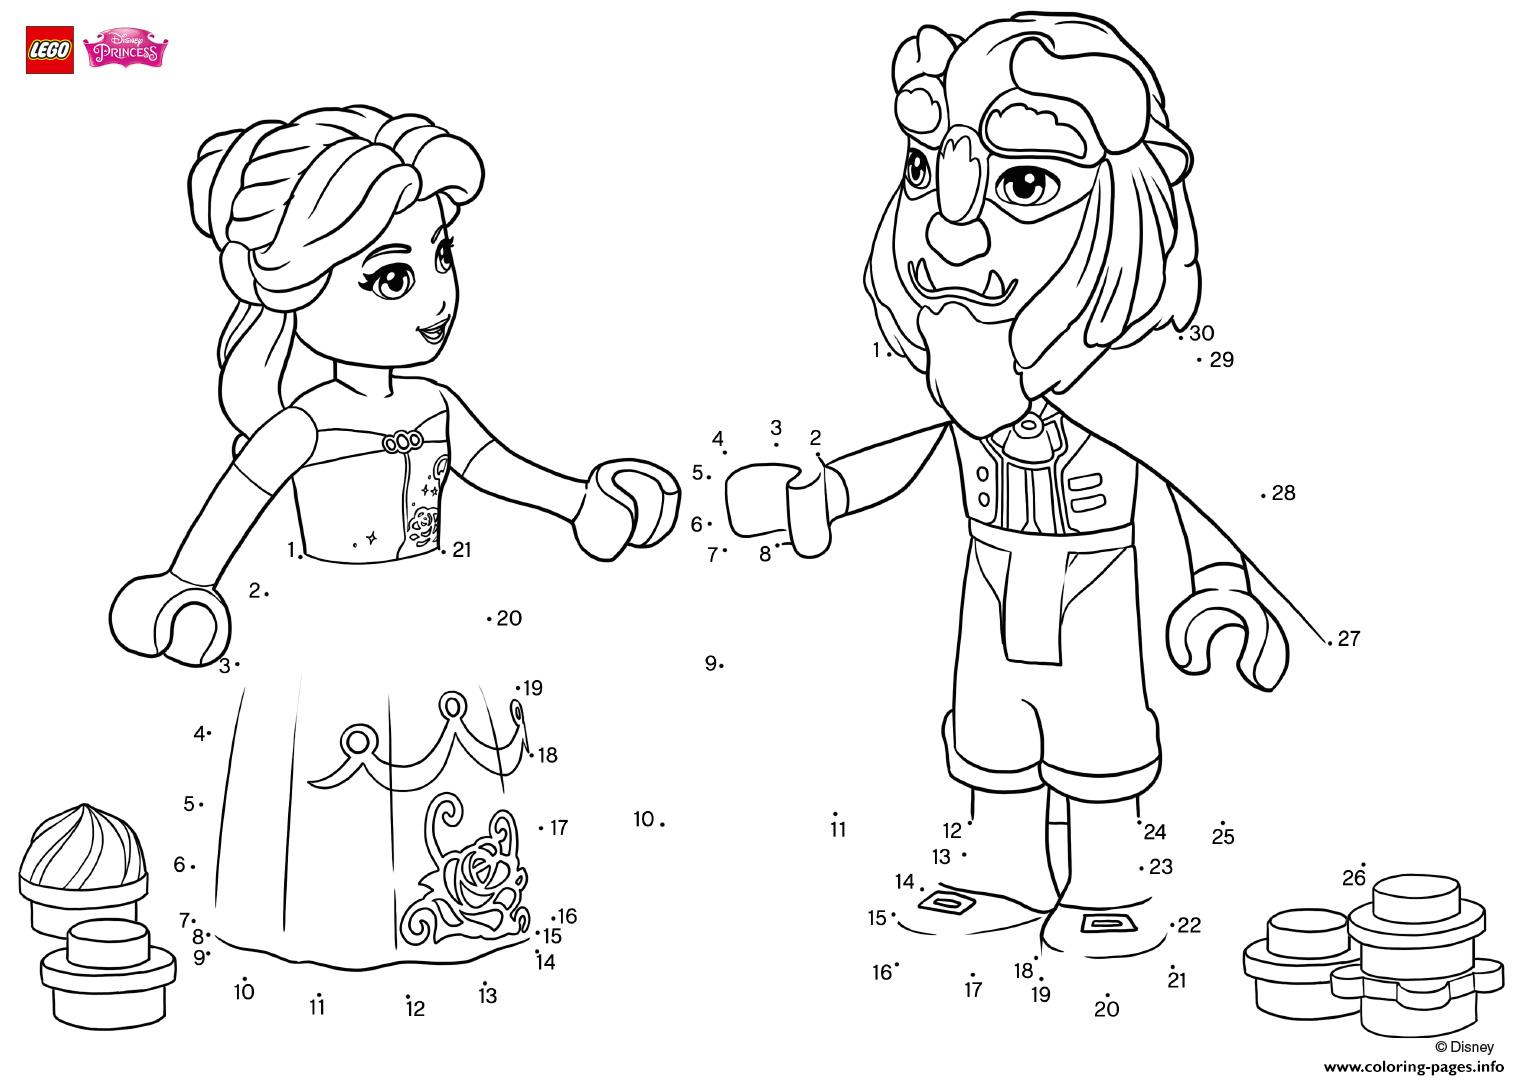 have fun completing the drawing of beauty and the beast lego